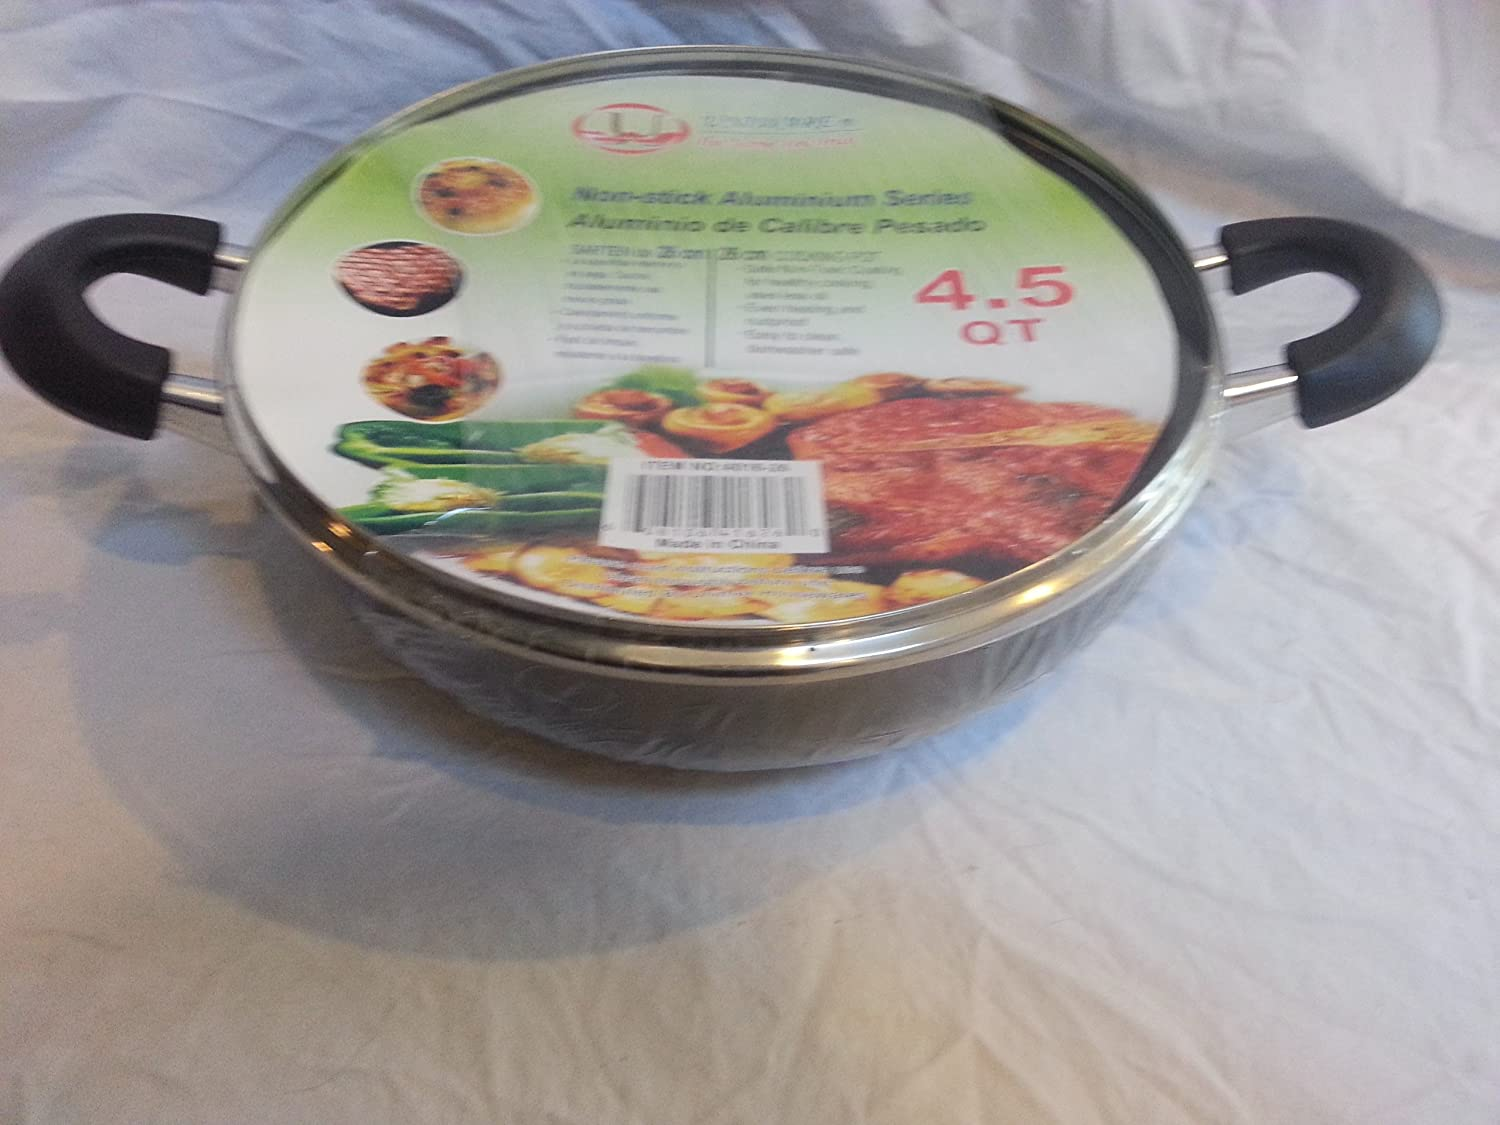 Amazon.com: Non-Stick Aluminium Rounded Cooking Pot / Casserole w/ Glass Cover (4.5): Kitchen & Dining